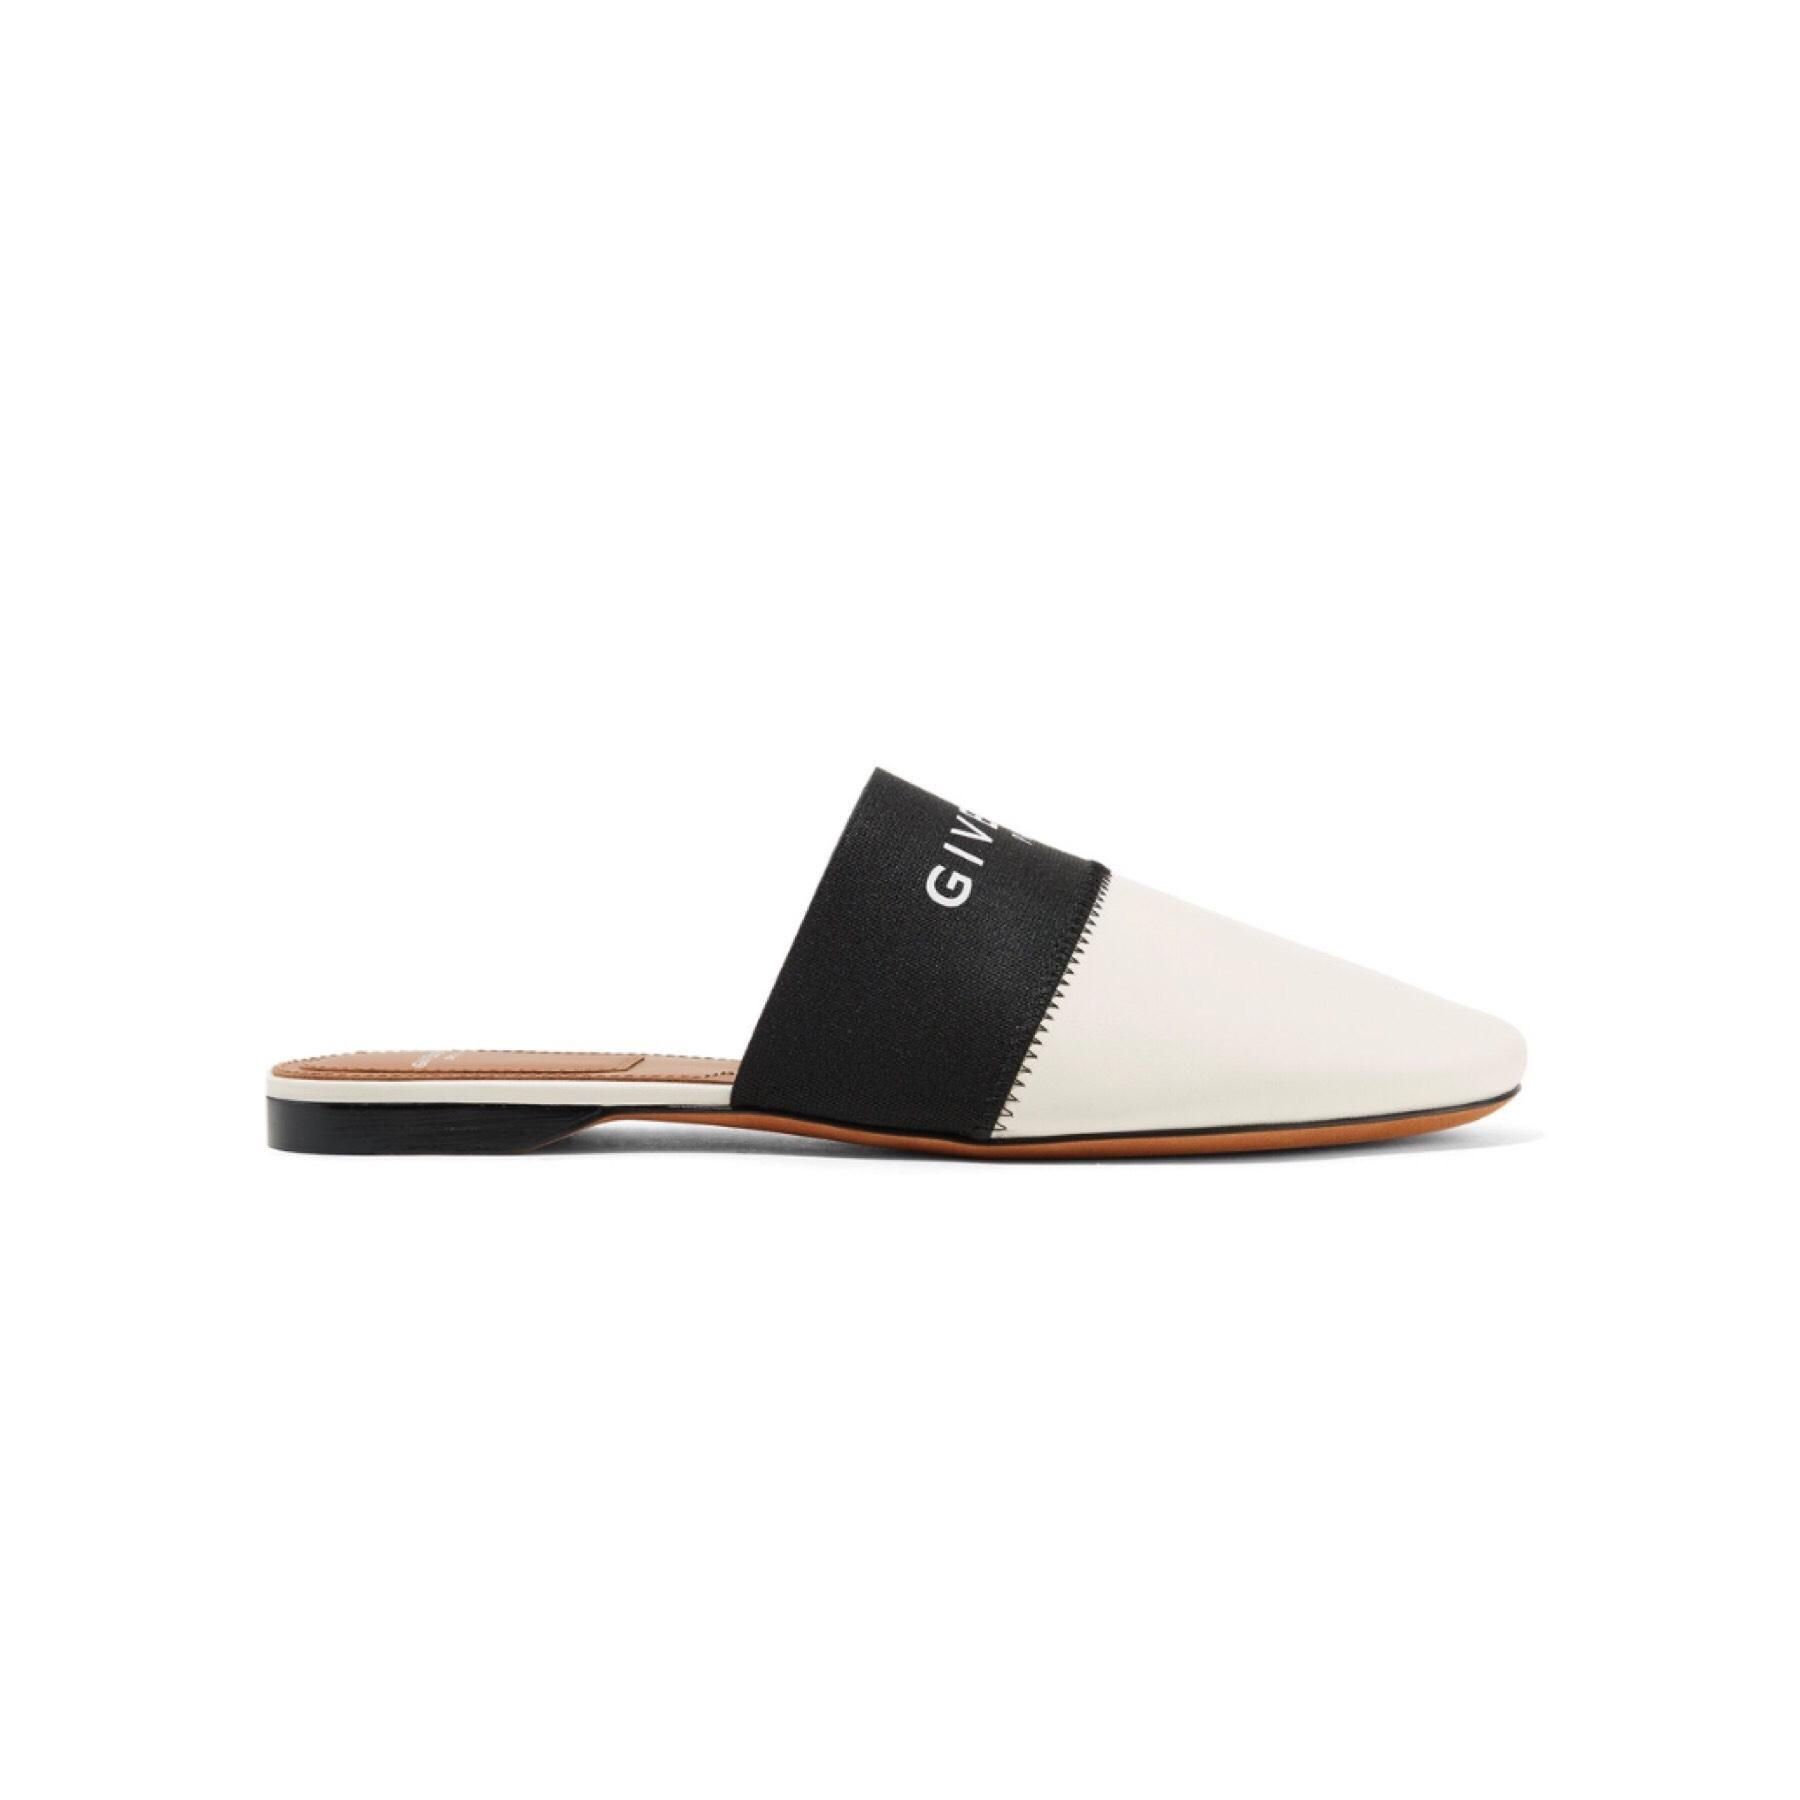 comfortable for sale free shipping supply Givenchy Bedford flat logo slippers 0CN4Ljvwx